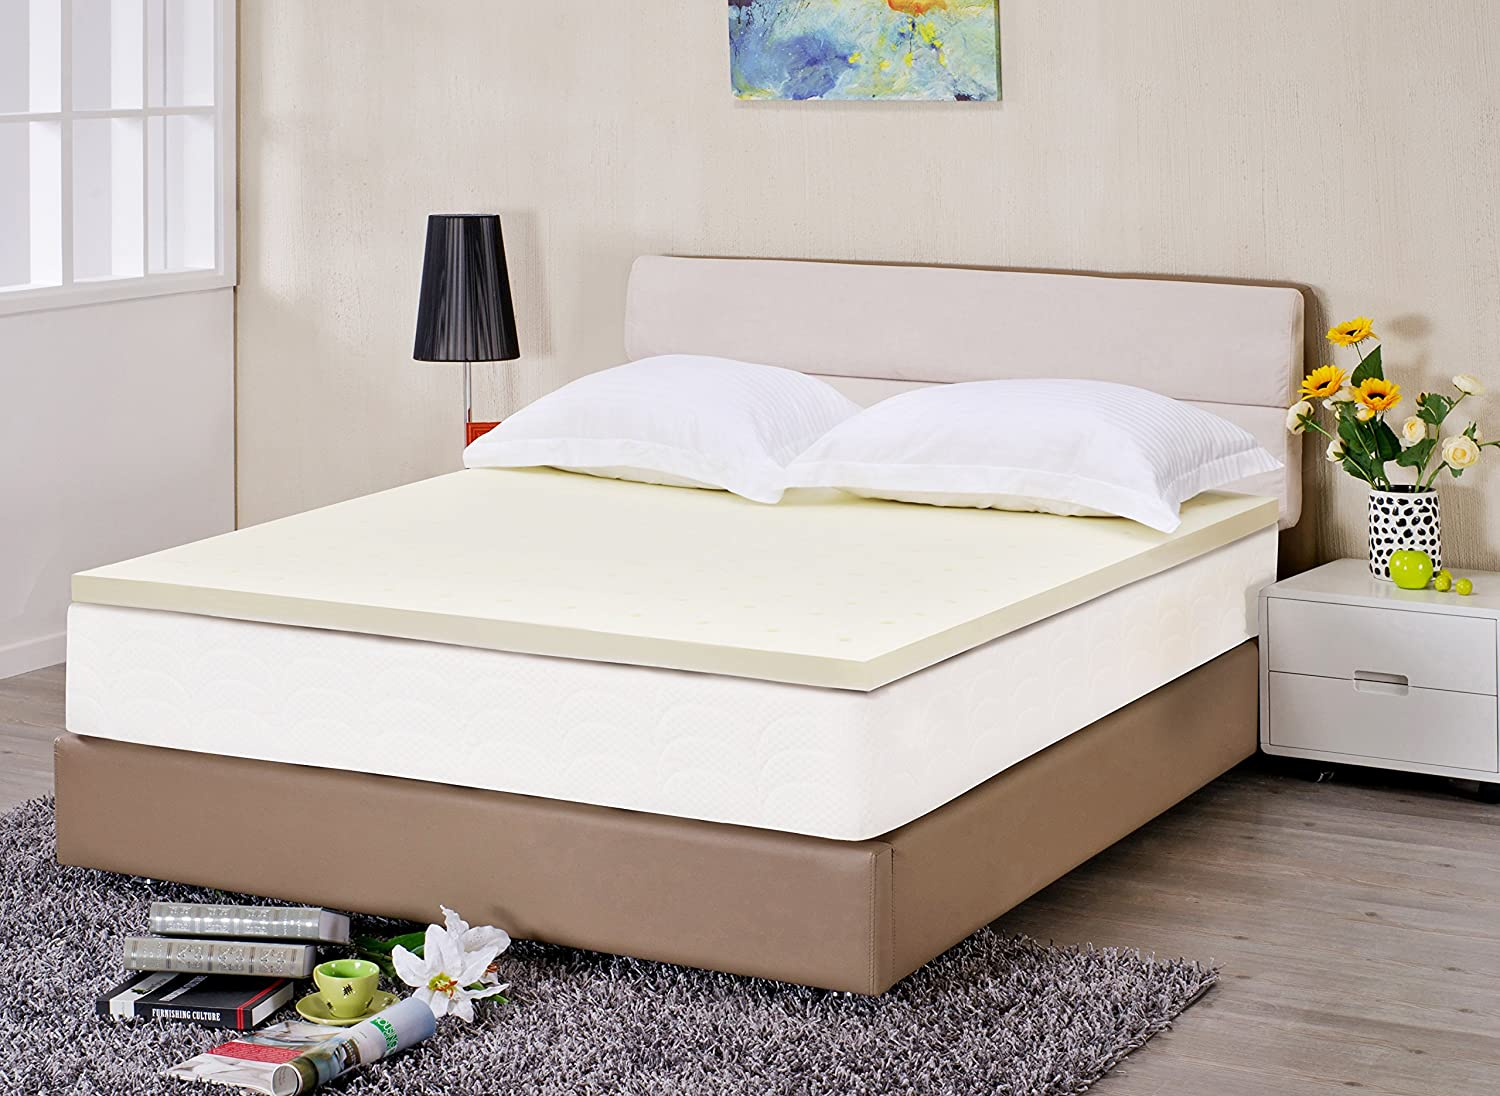 foam topper way guides best clean memoryfoam memory the how mattress to hero overstock com a